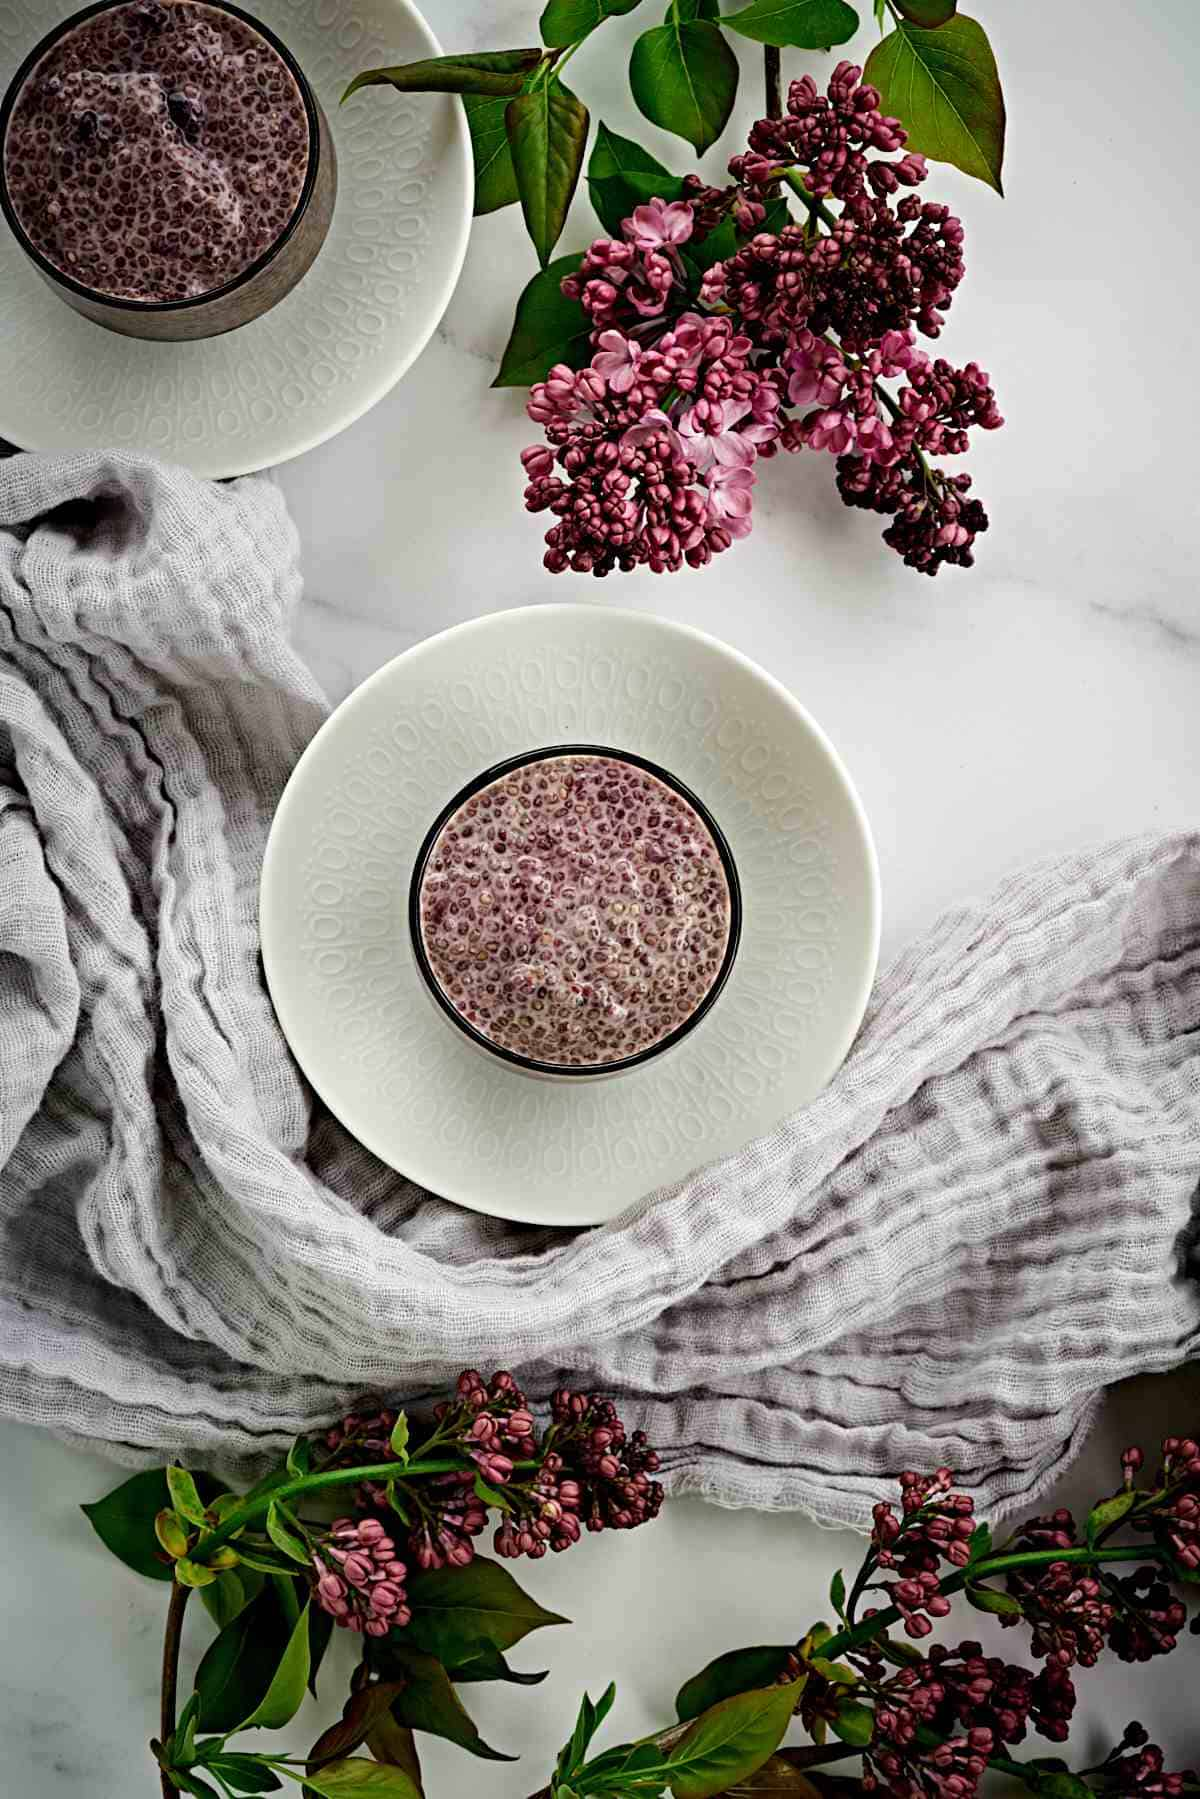 Chia pudding in a cup with flowers.